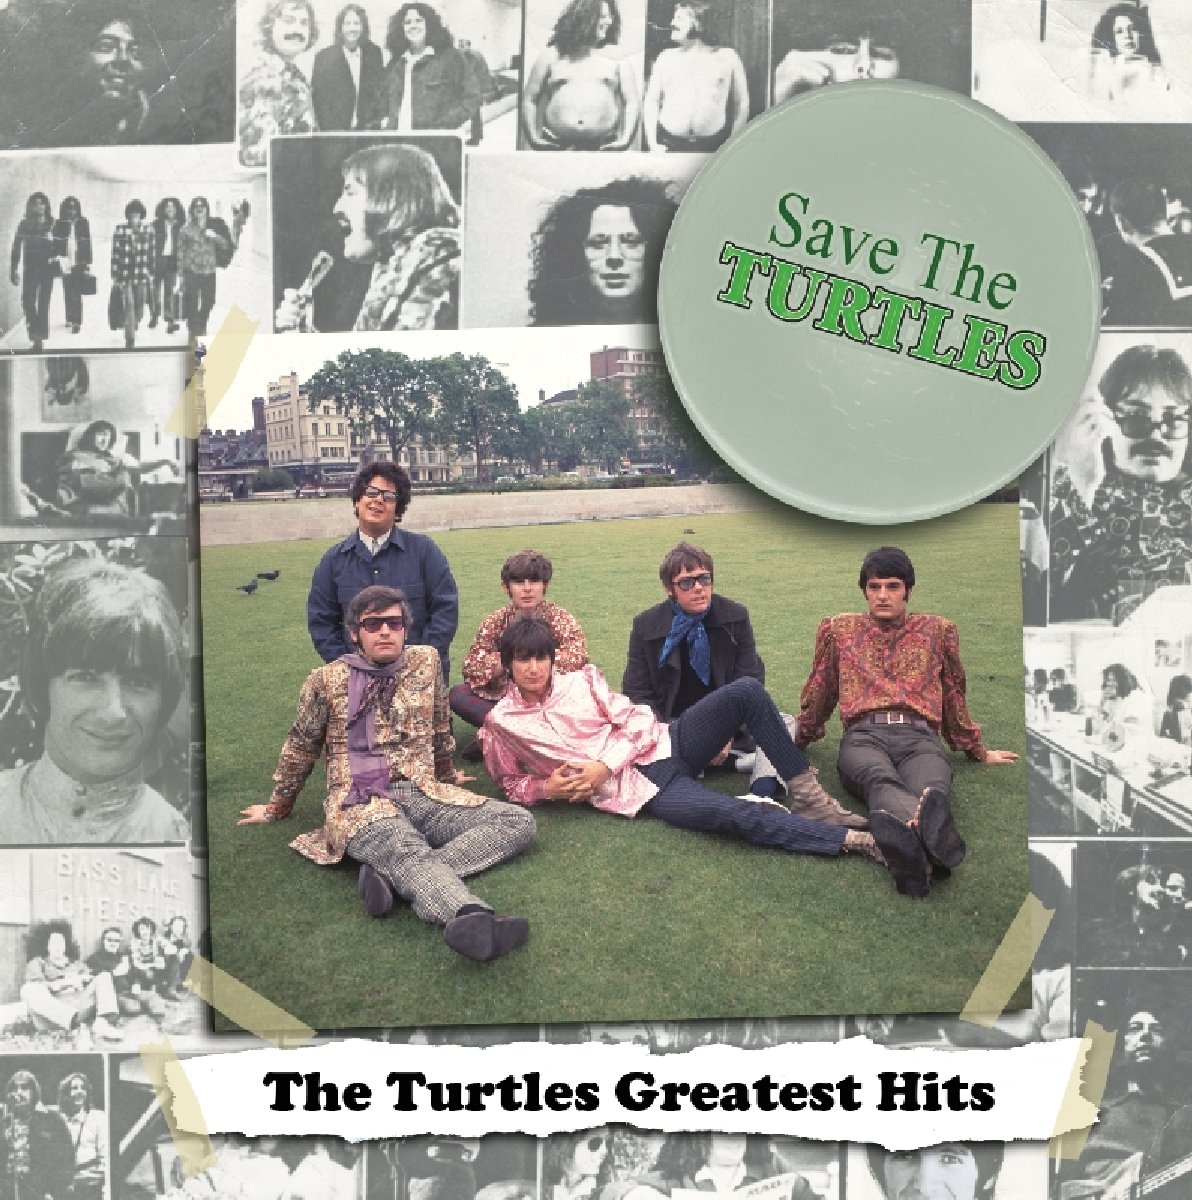 Save The Turtles: The Turtles Greatest Hits by Manifesto